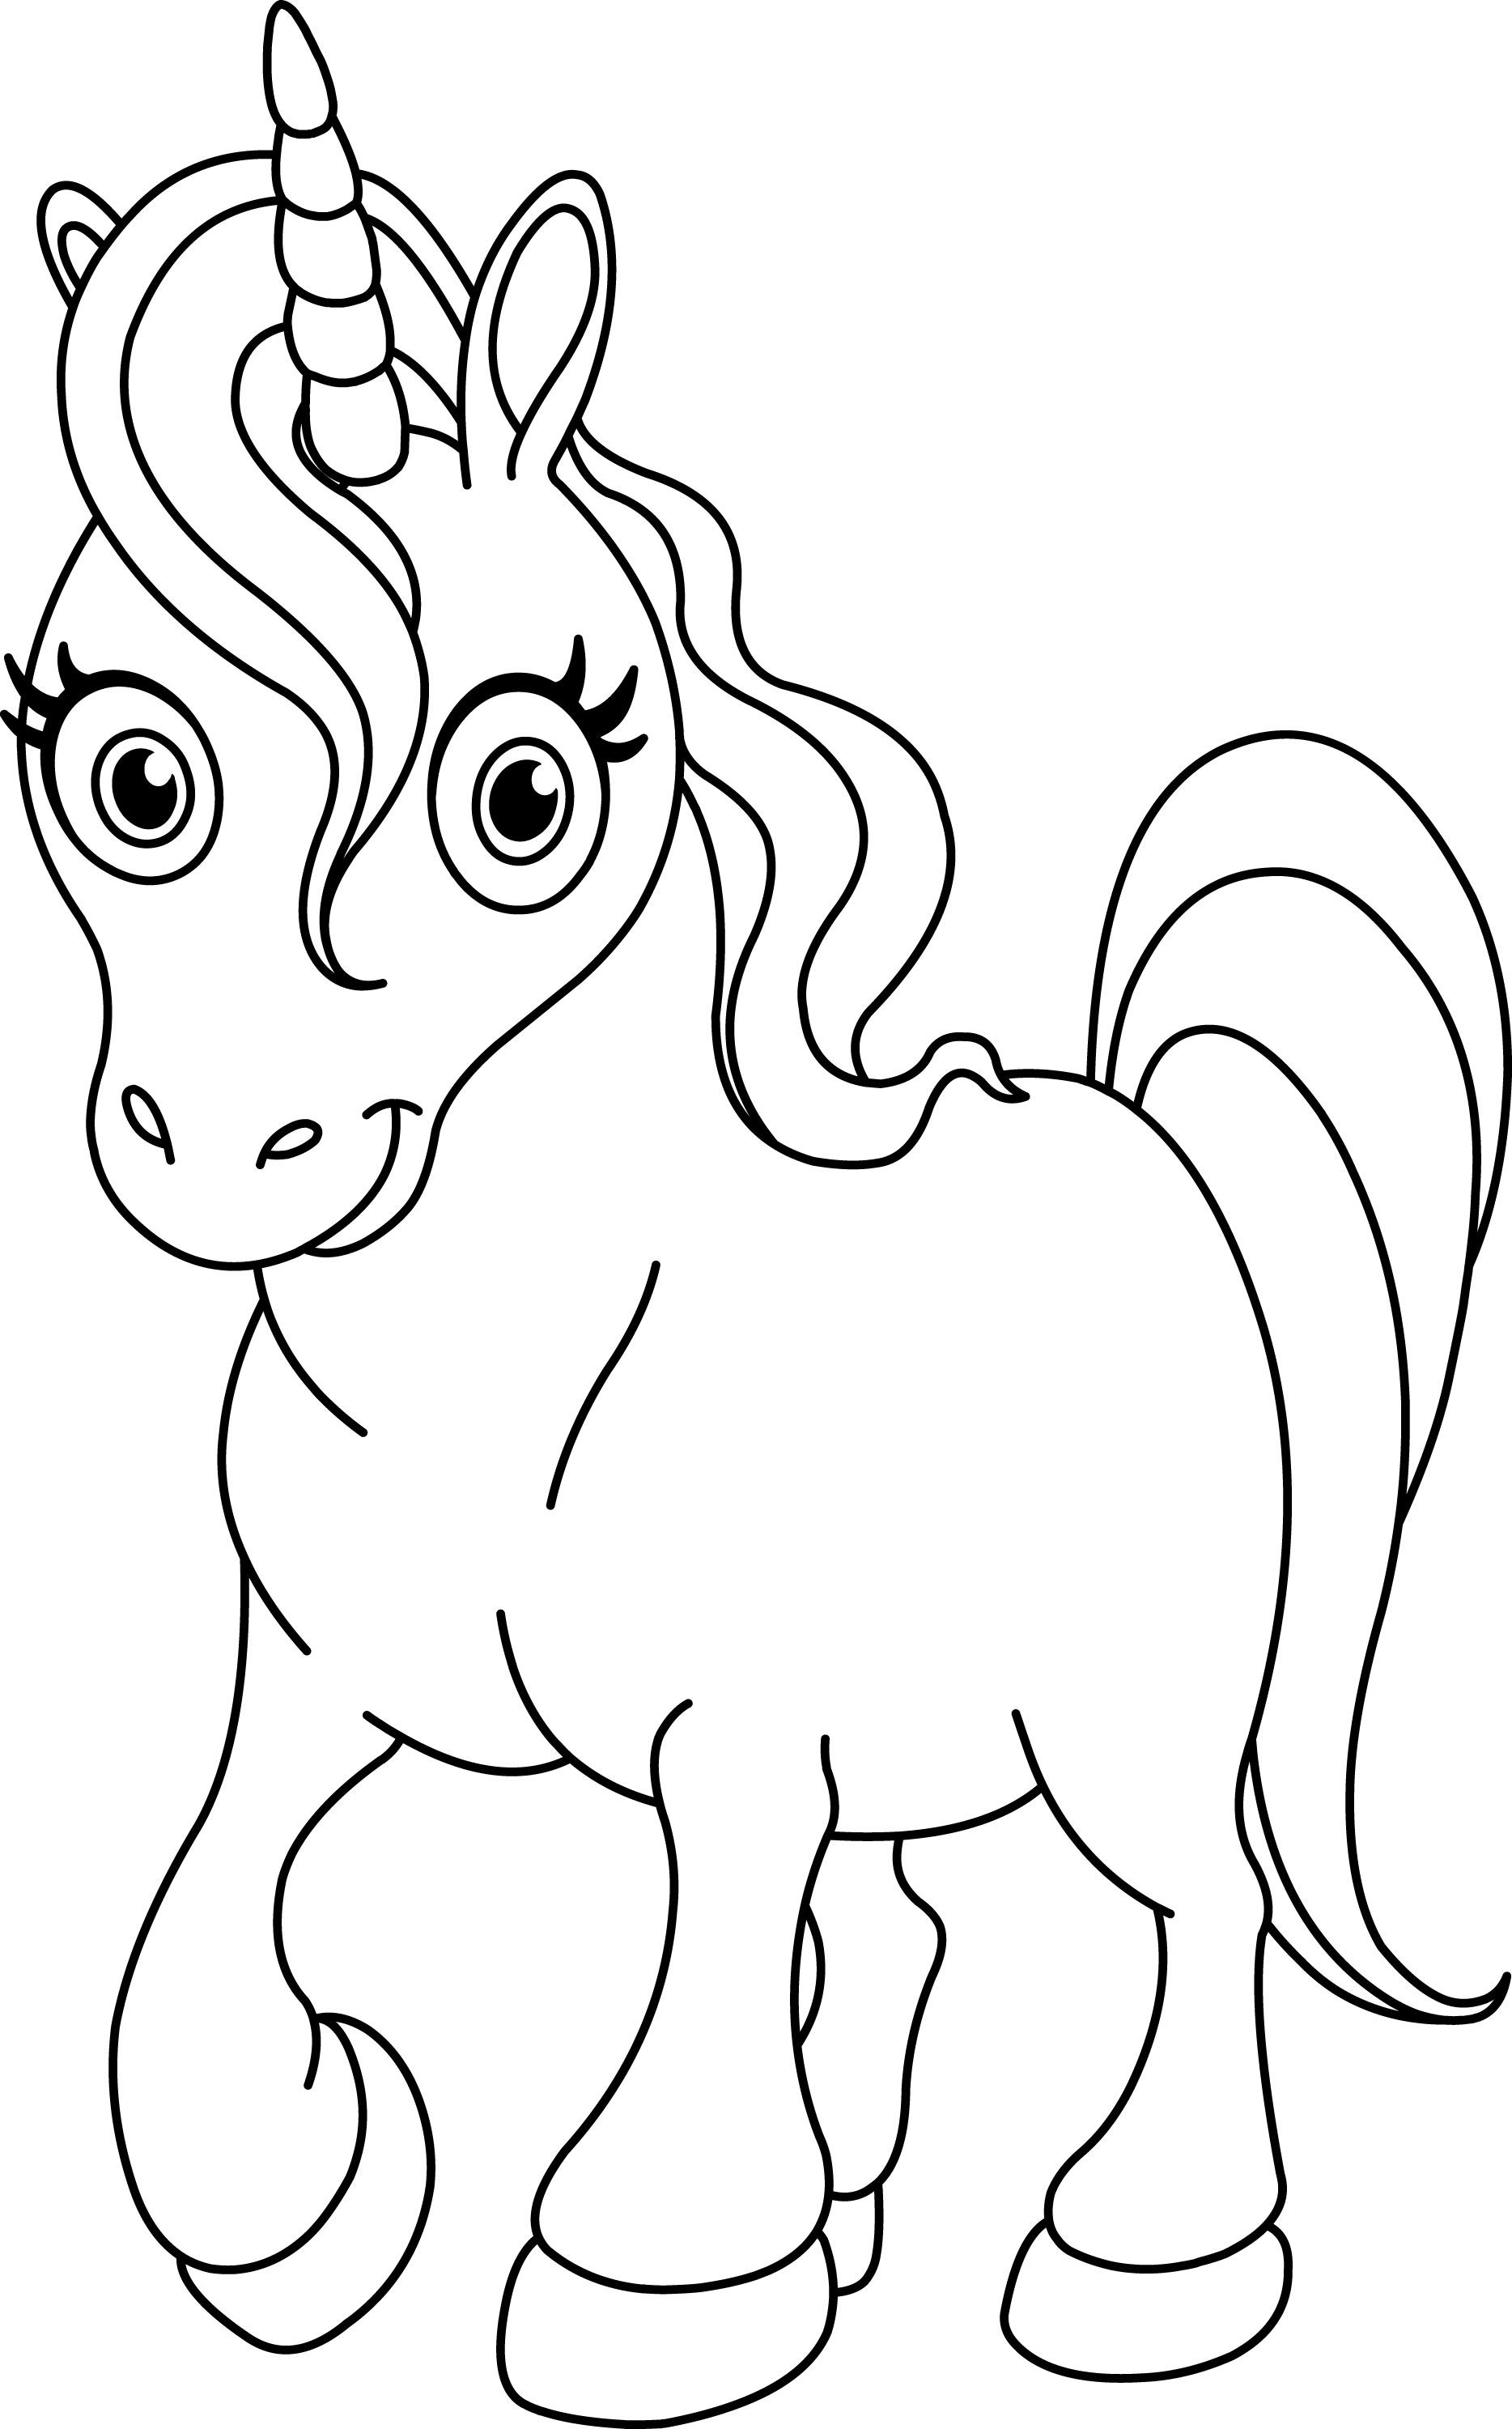 35 Unicorn Coloring Pages Coloringstar Emoji Coloring Pages Horse Coloring Pages Unicorn Coloring Pages